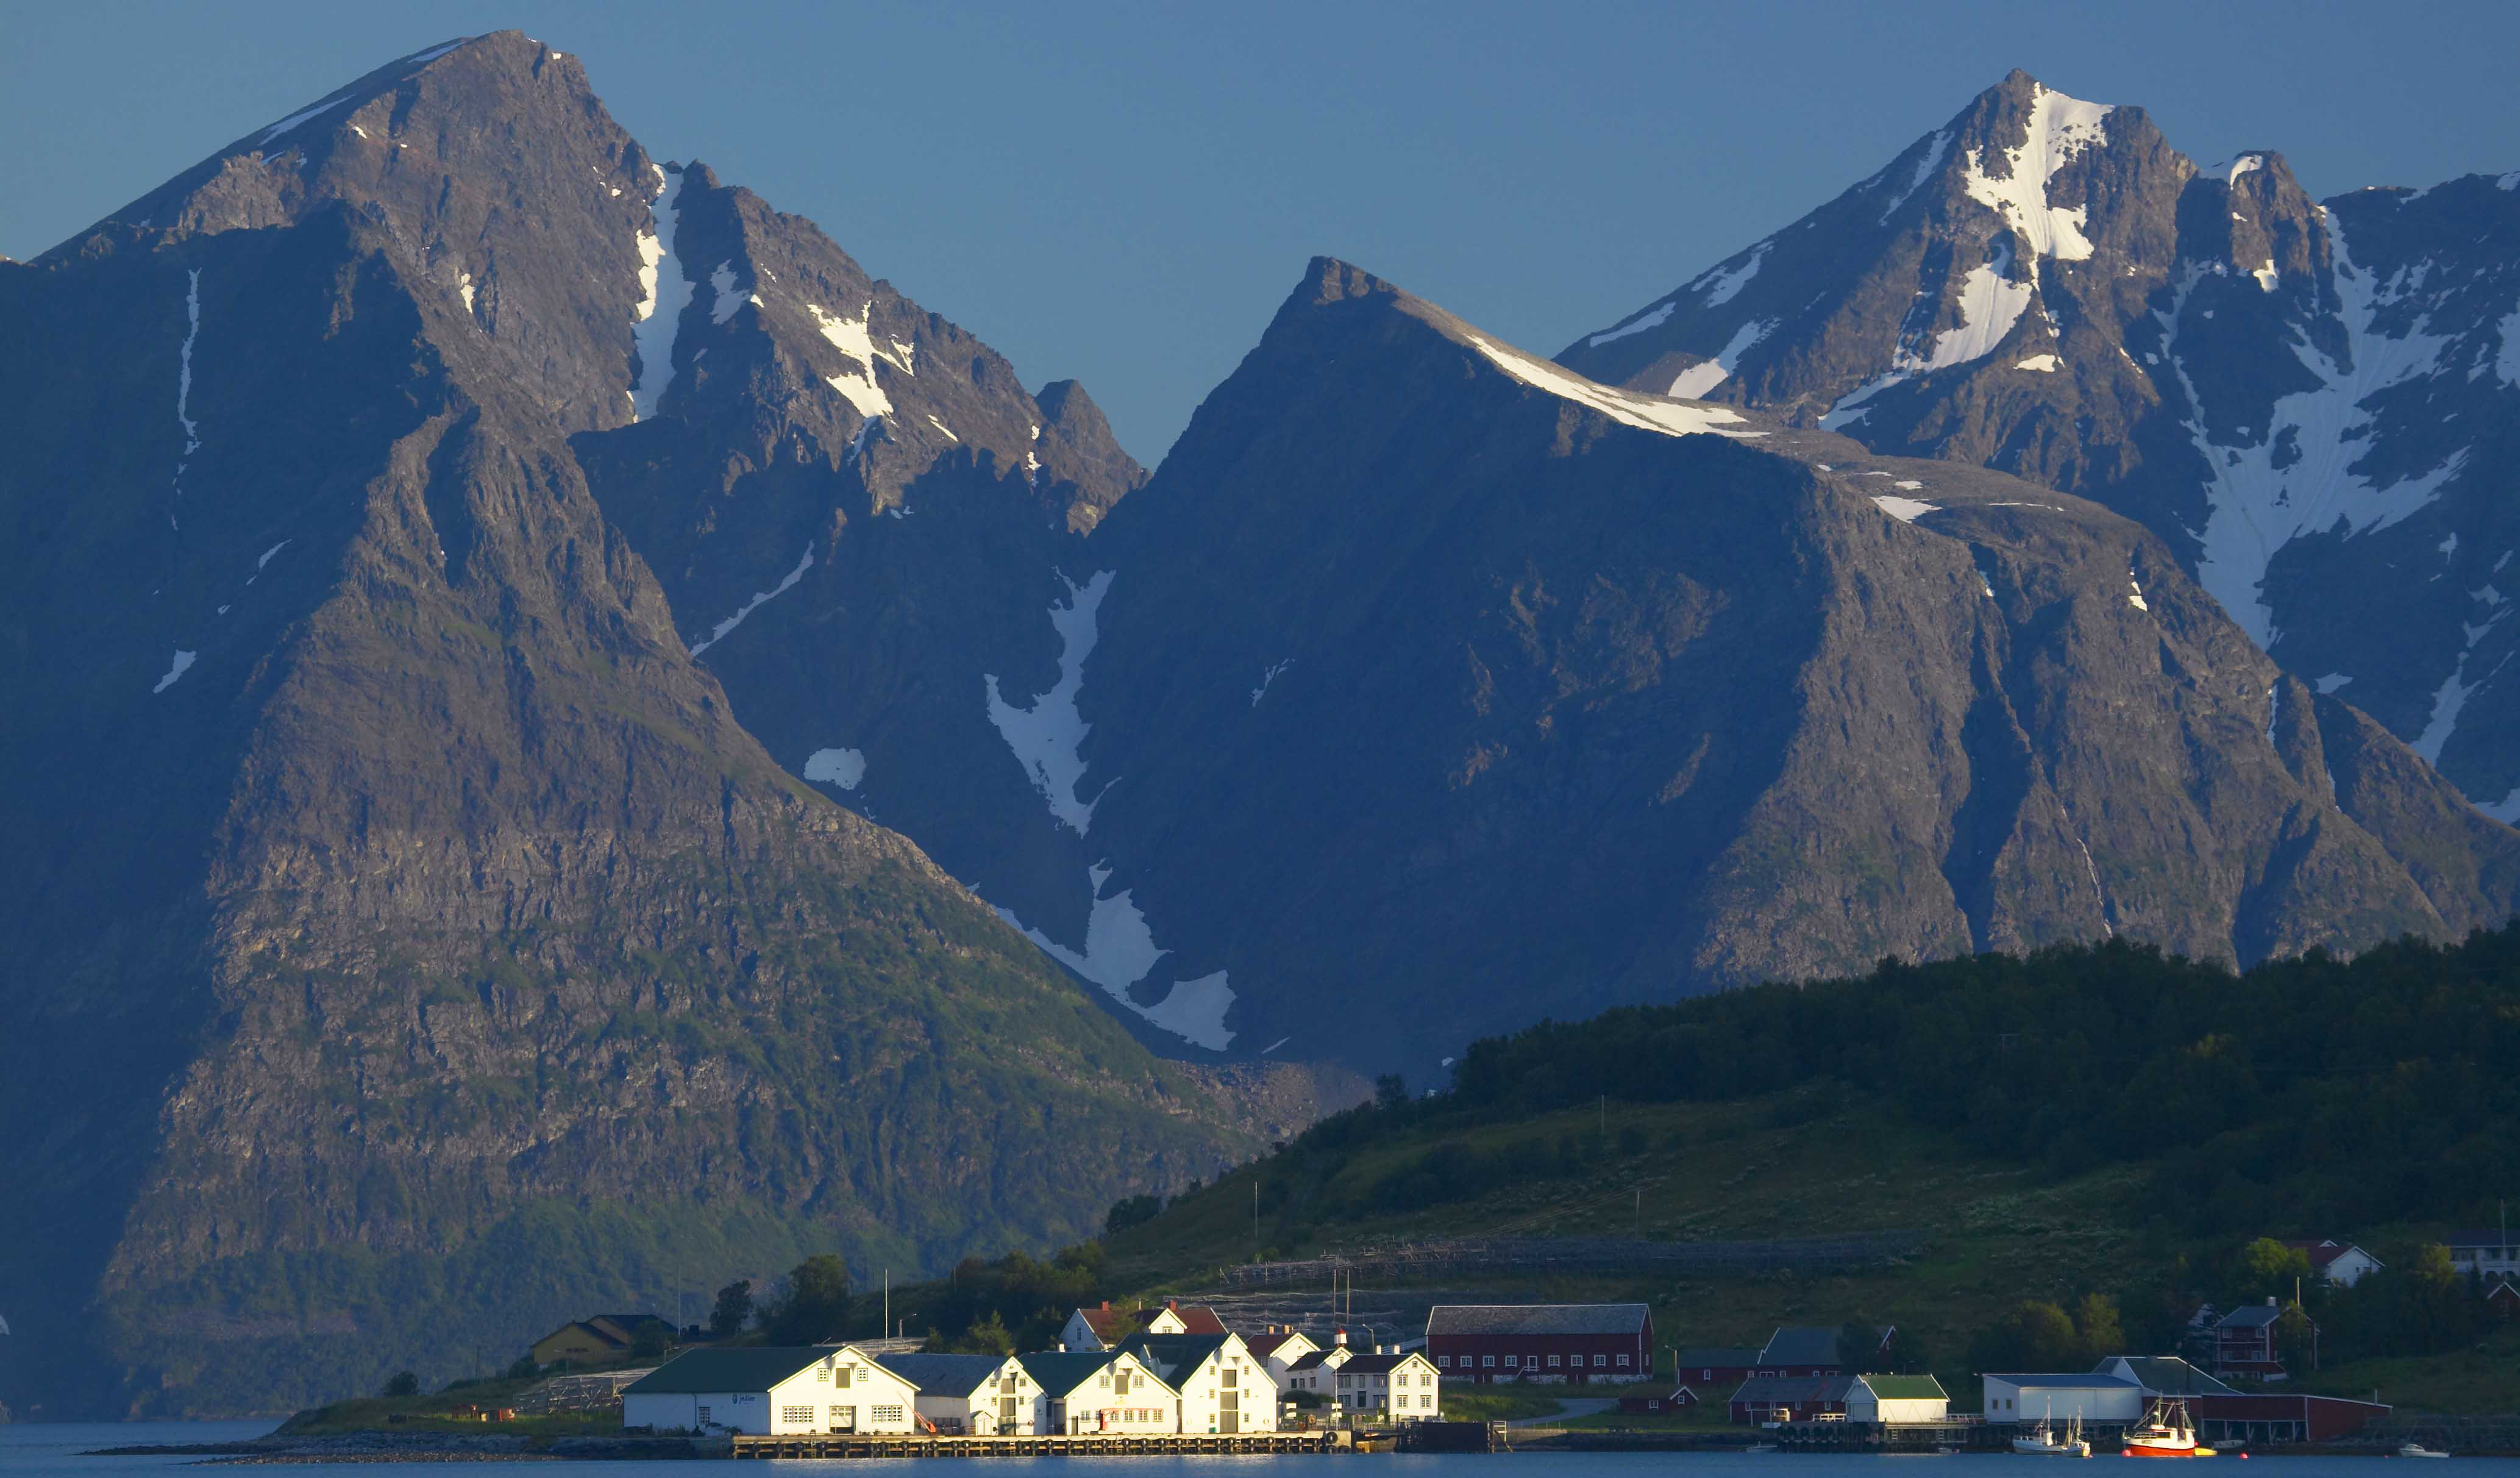 Hamnnes trading place with mountains in the background, Nordreisa, Troms.